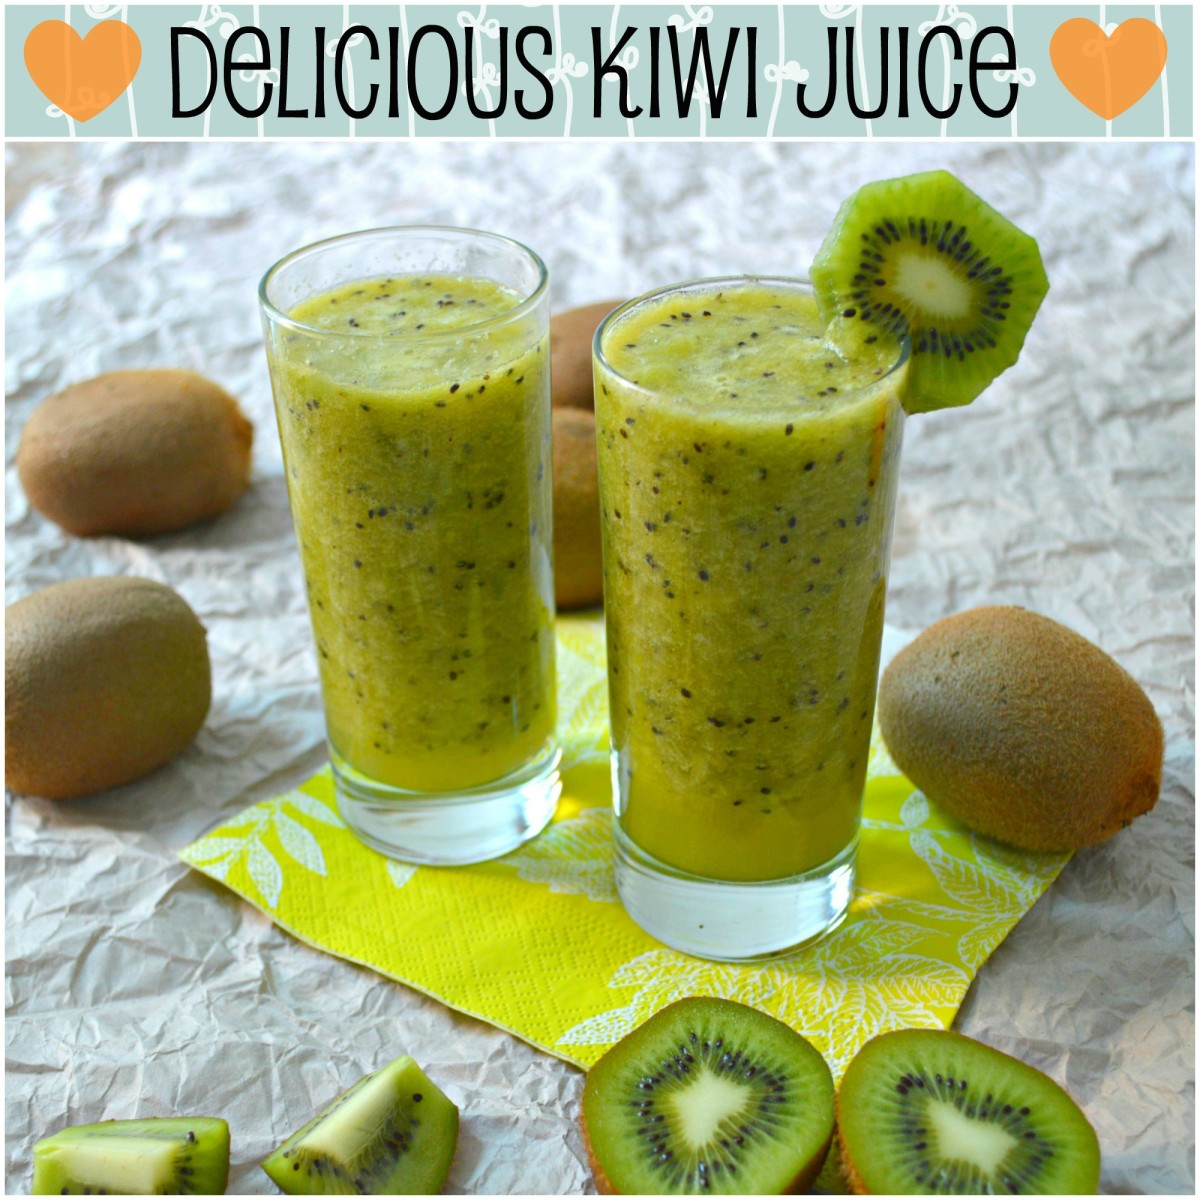 A simple and healthy kiwi juice that tastes as good as it looks!